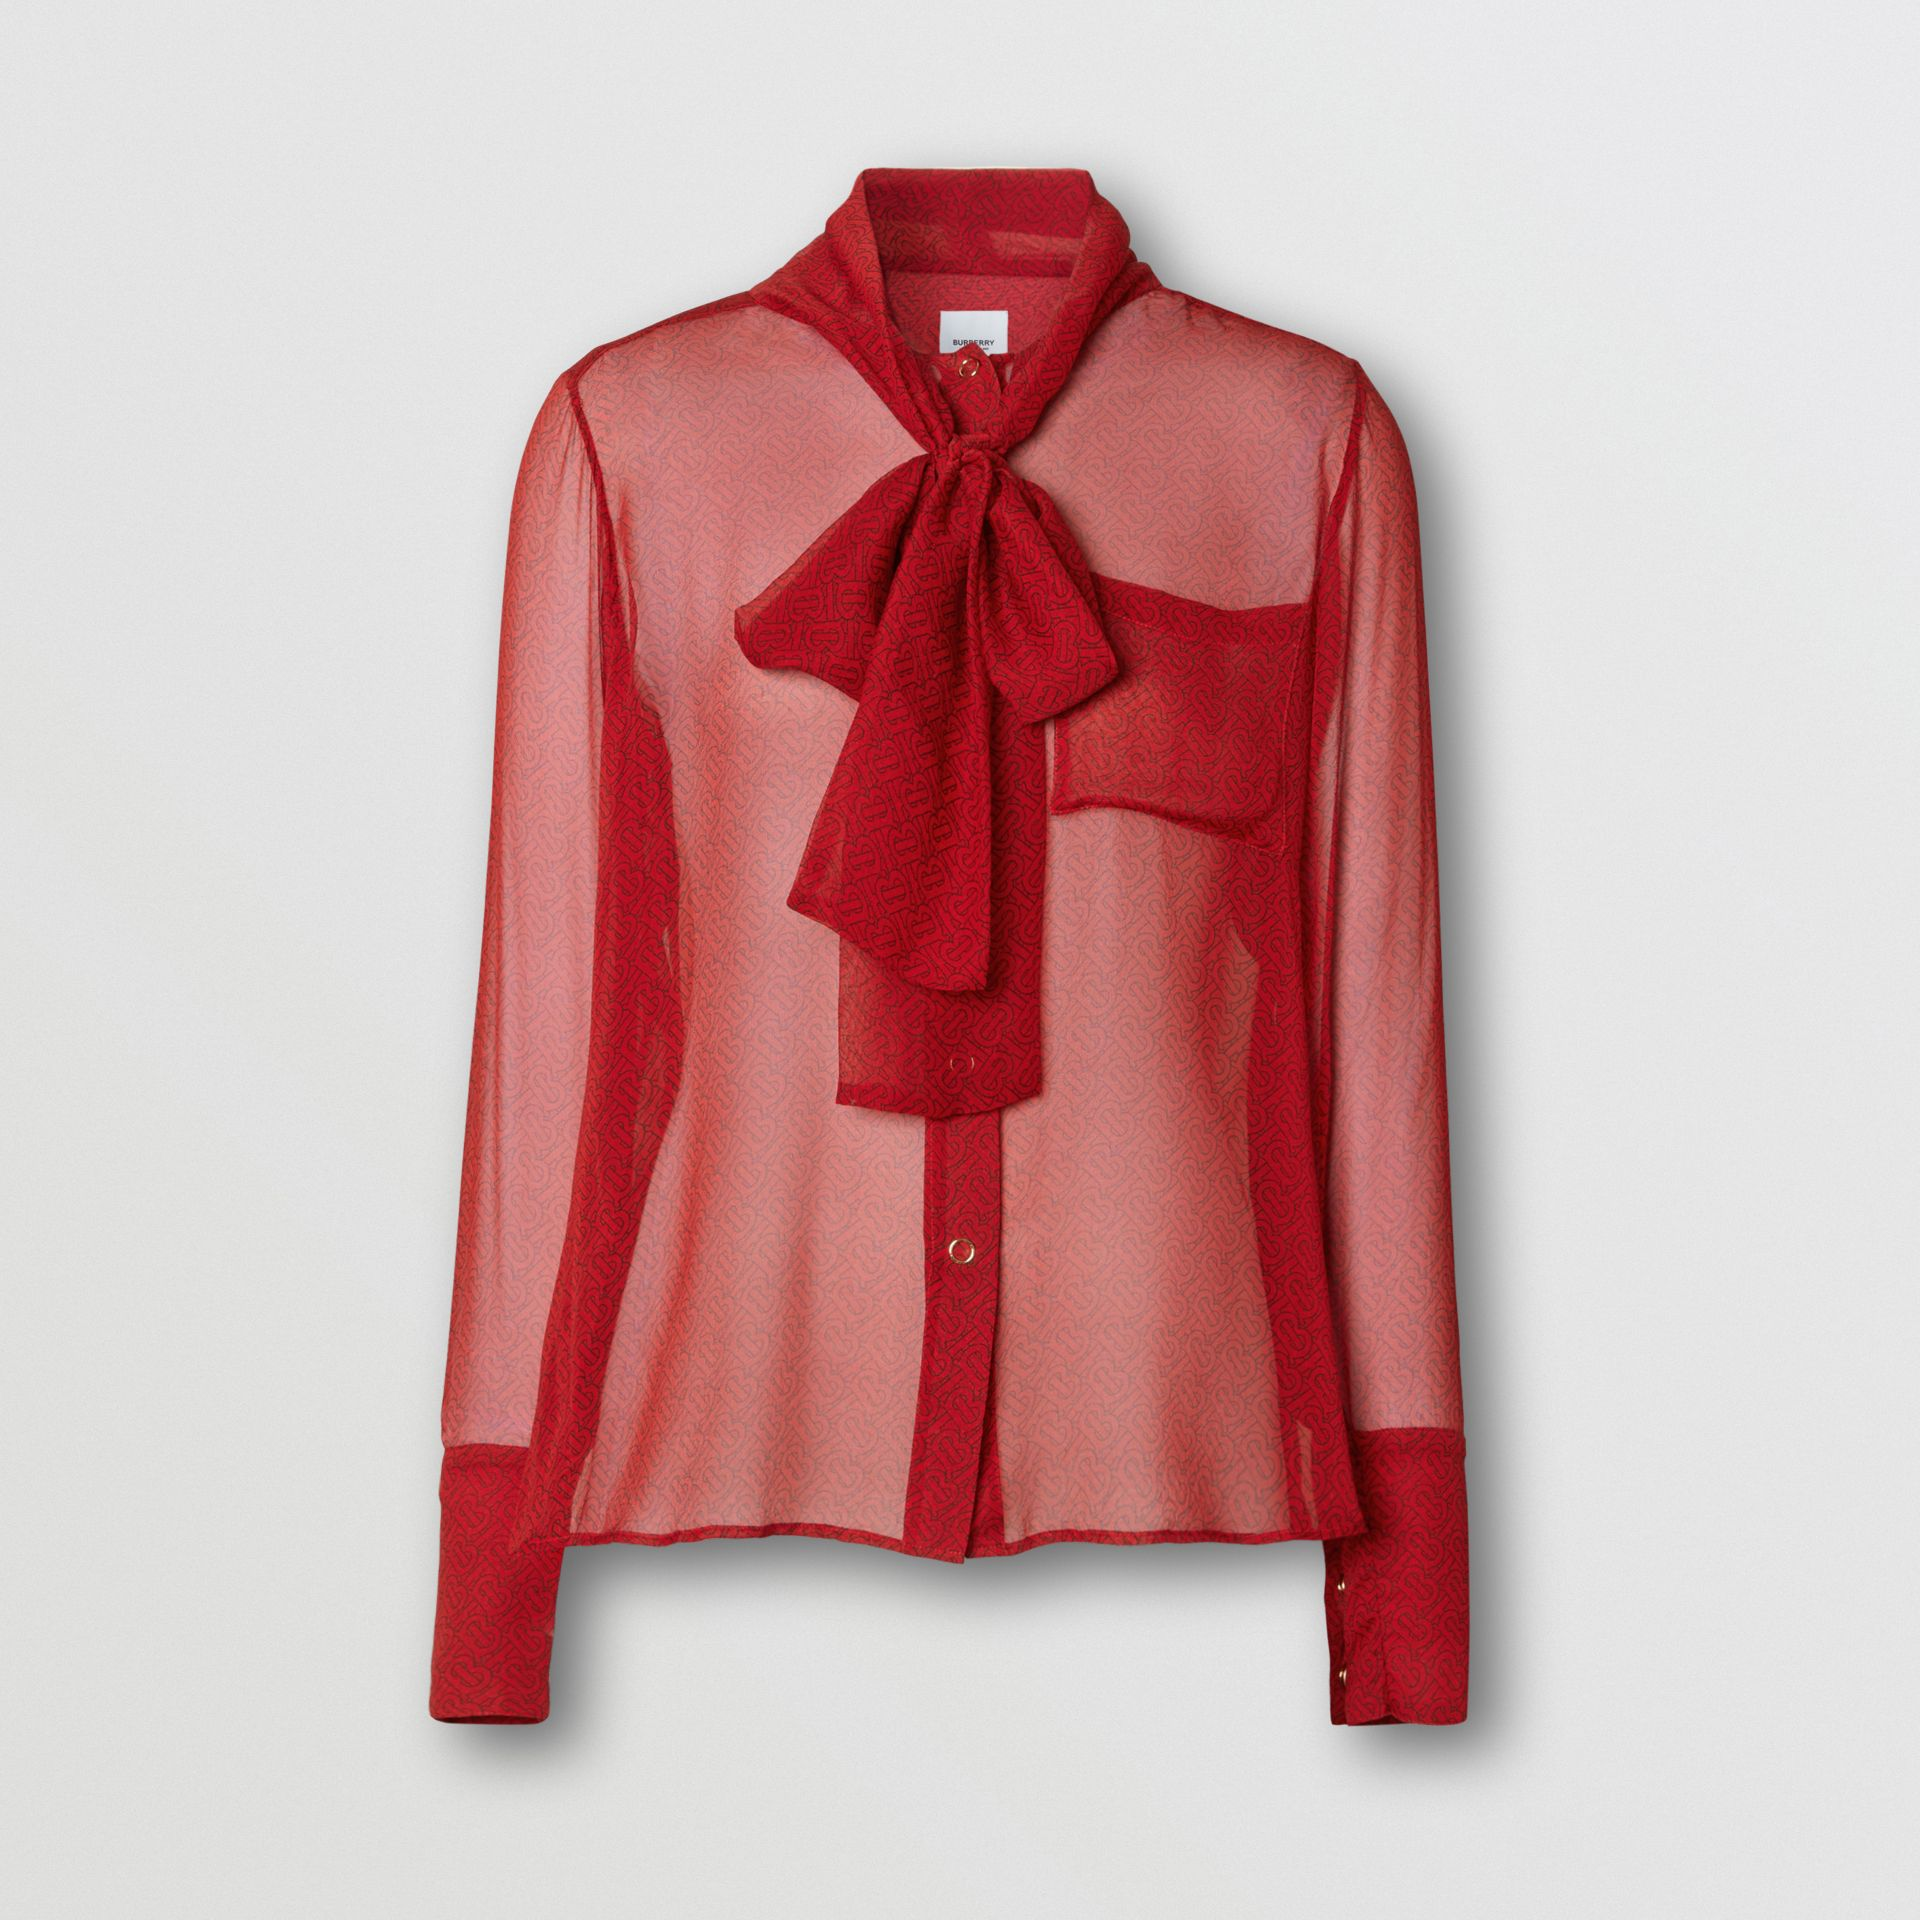 Monogram Print Silk Chiffon Pussy-bow Blouse in Bright Red - Women | Burberry Hong Kong S.A.R - gallery image 3